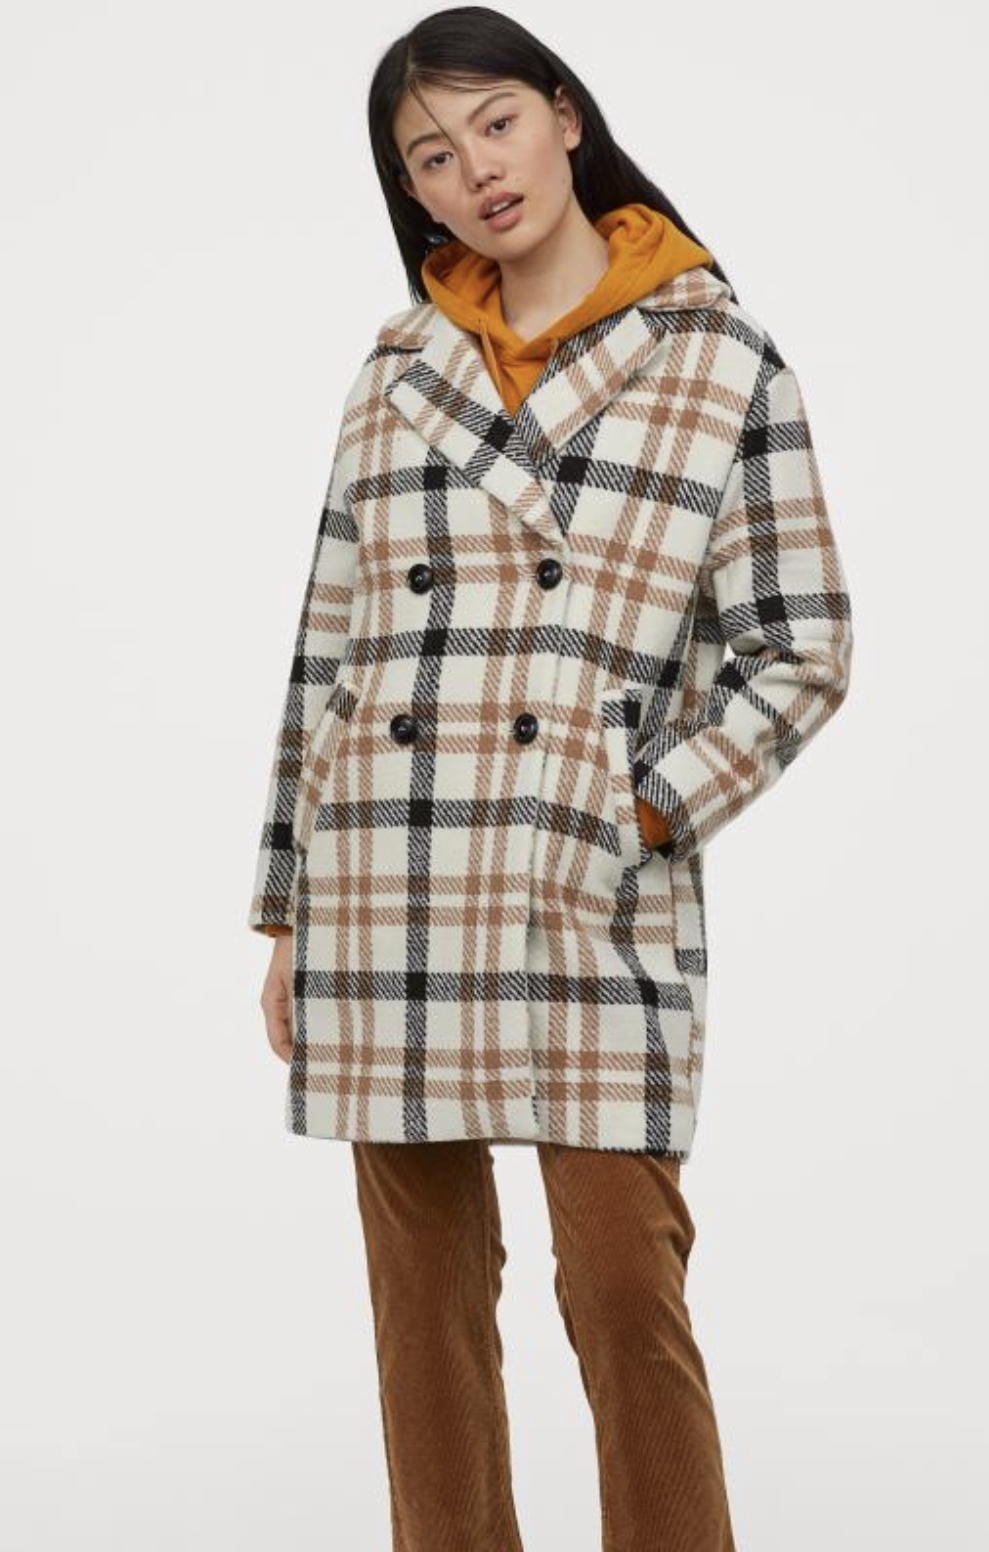 H&M double-breasted check coat, $69.99